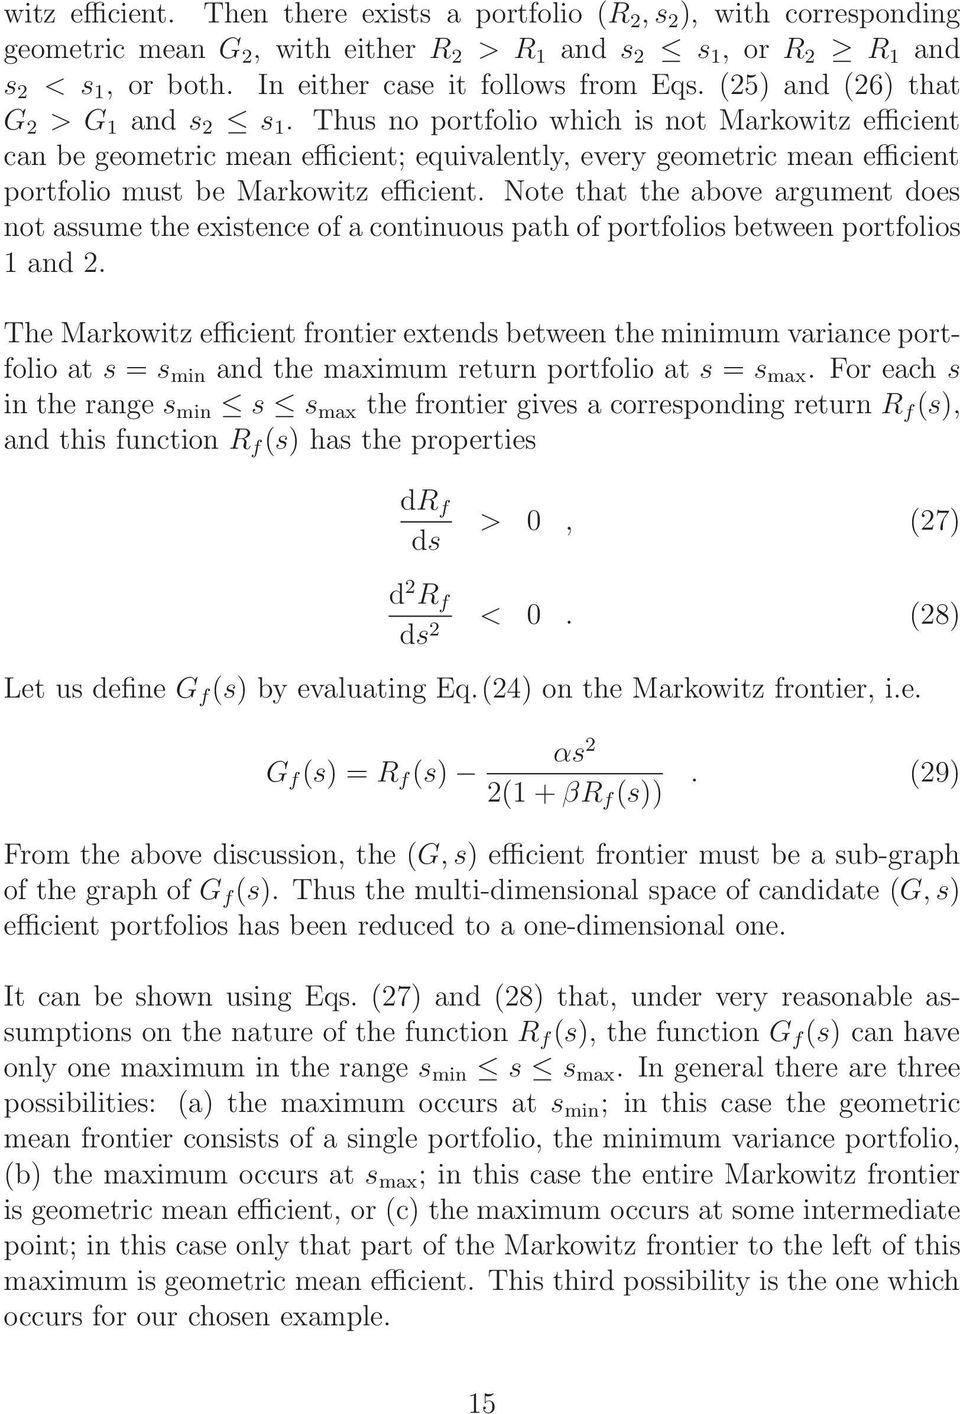 Thus no portfolio which is not Markowitz efficient can be geometric mean efficient; equivalently, every geometric mean efficient portfolio must be Markowitz efficient.